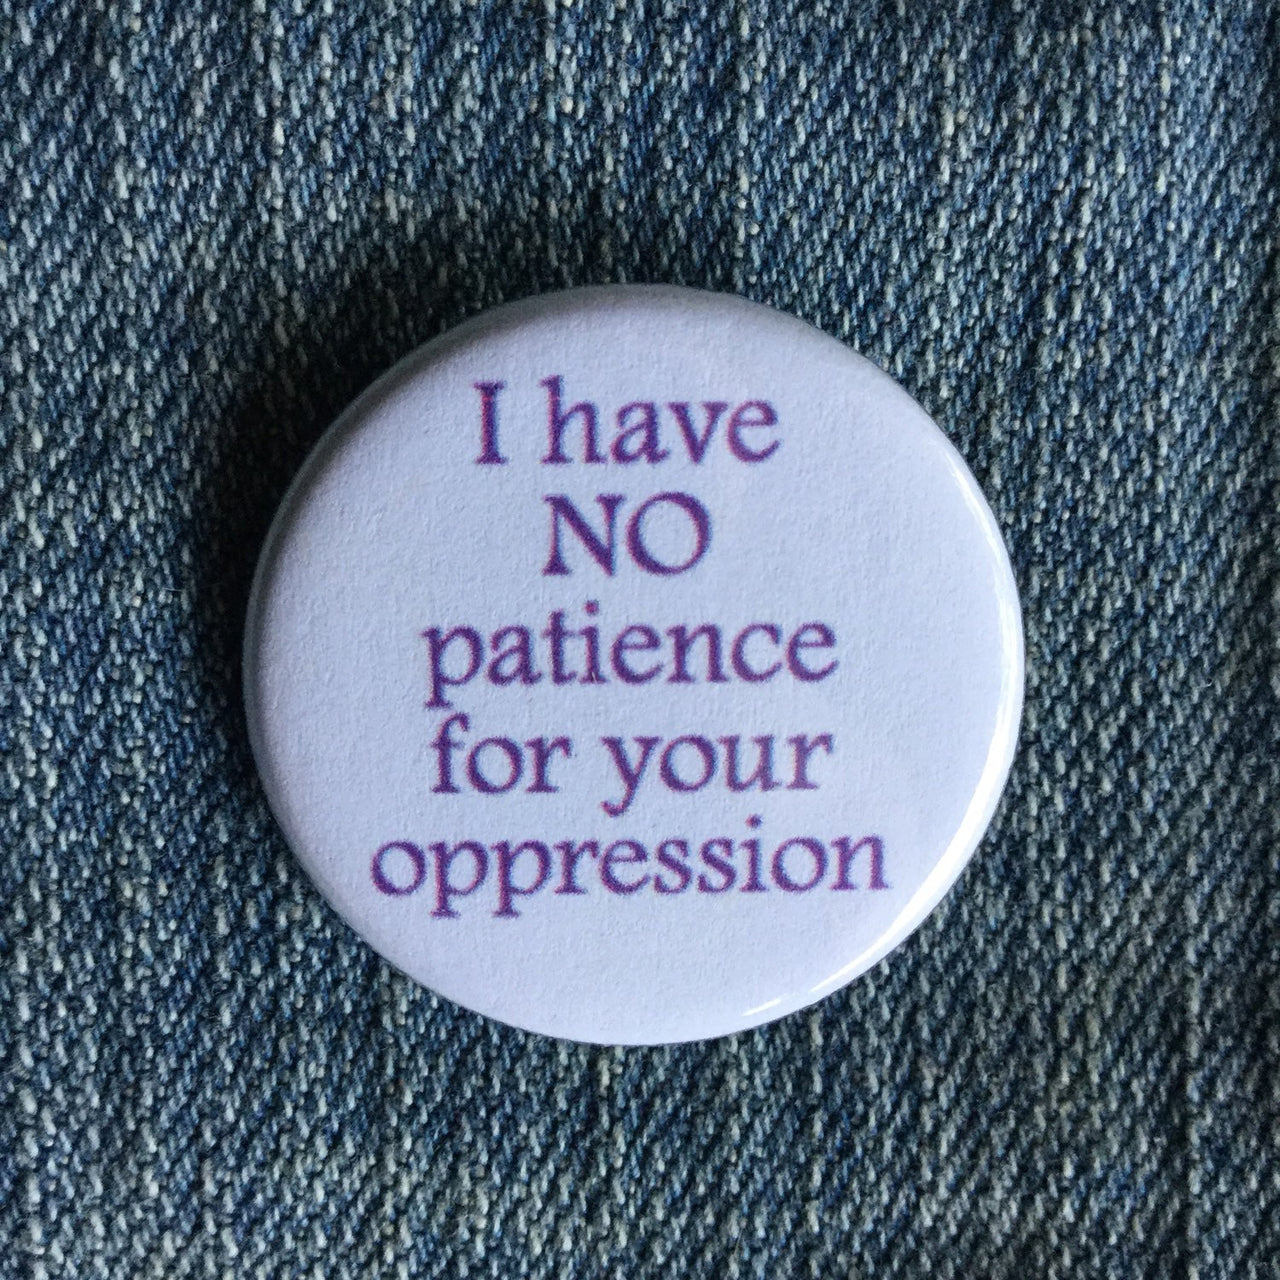 I have no patience for your oppression - Radical Buttons